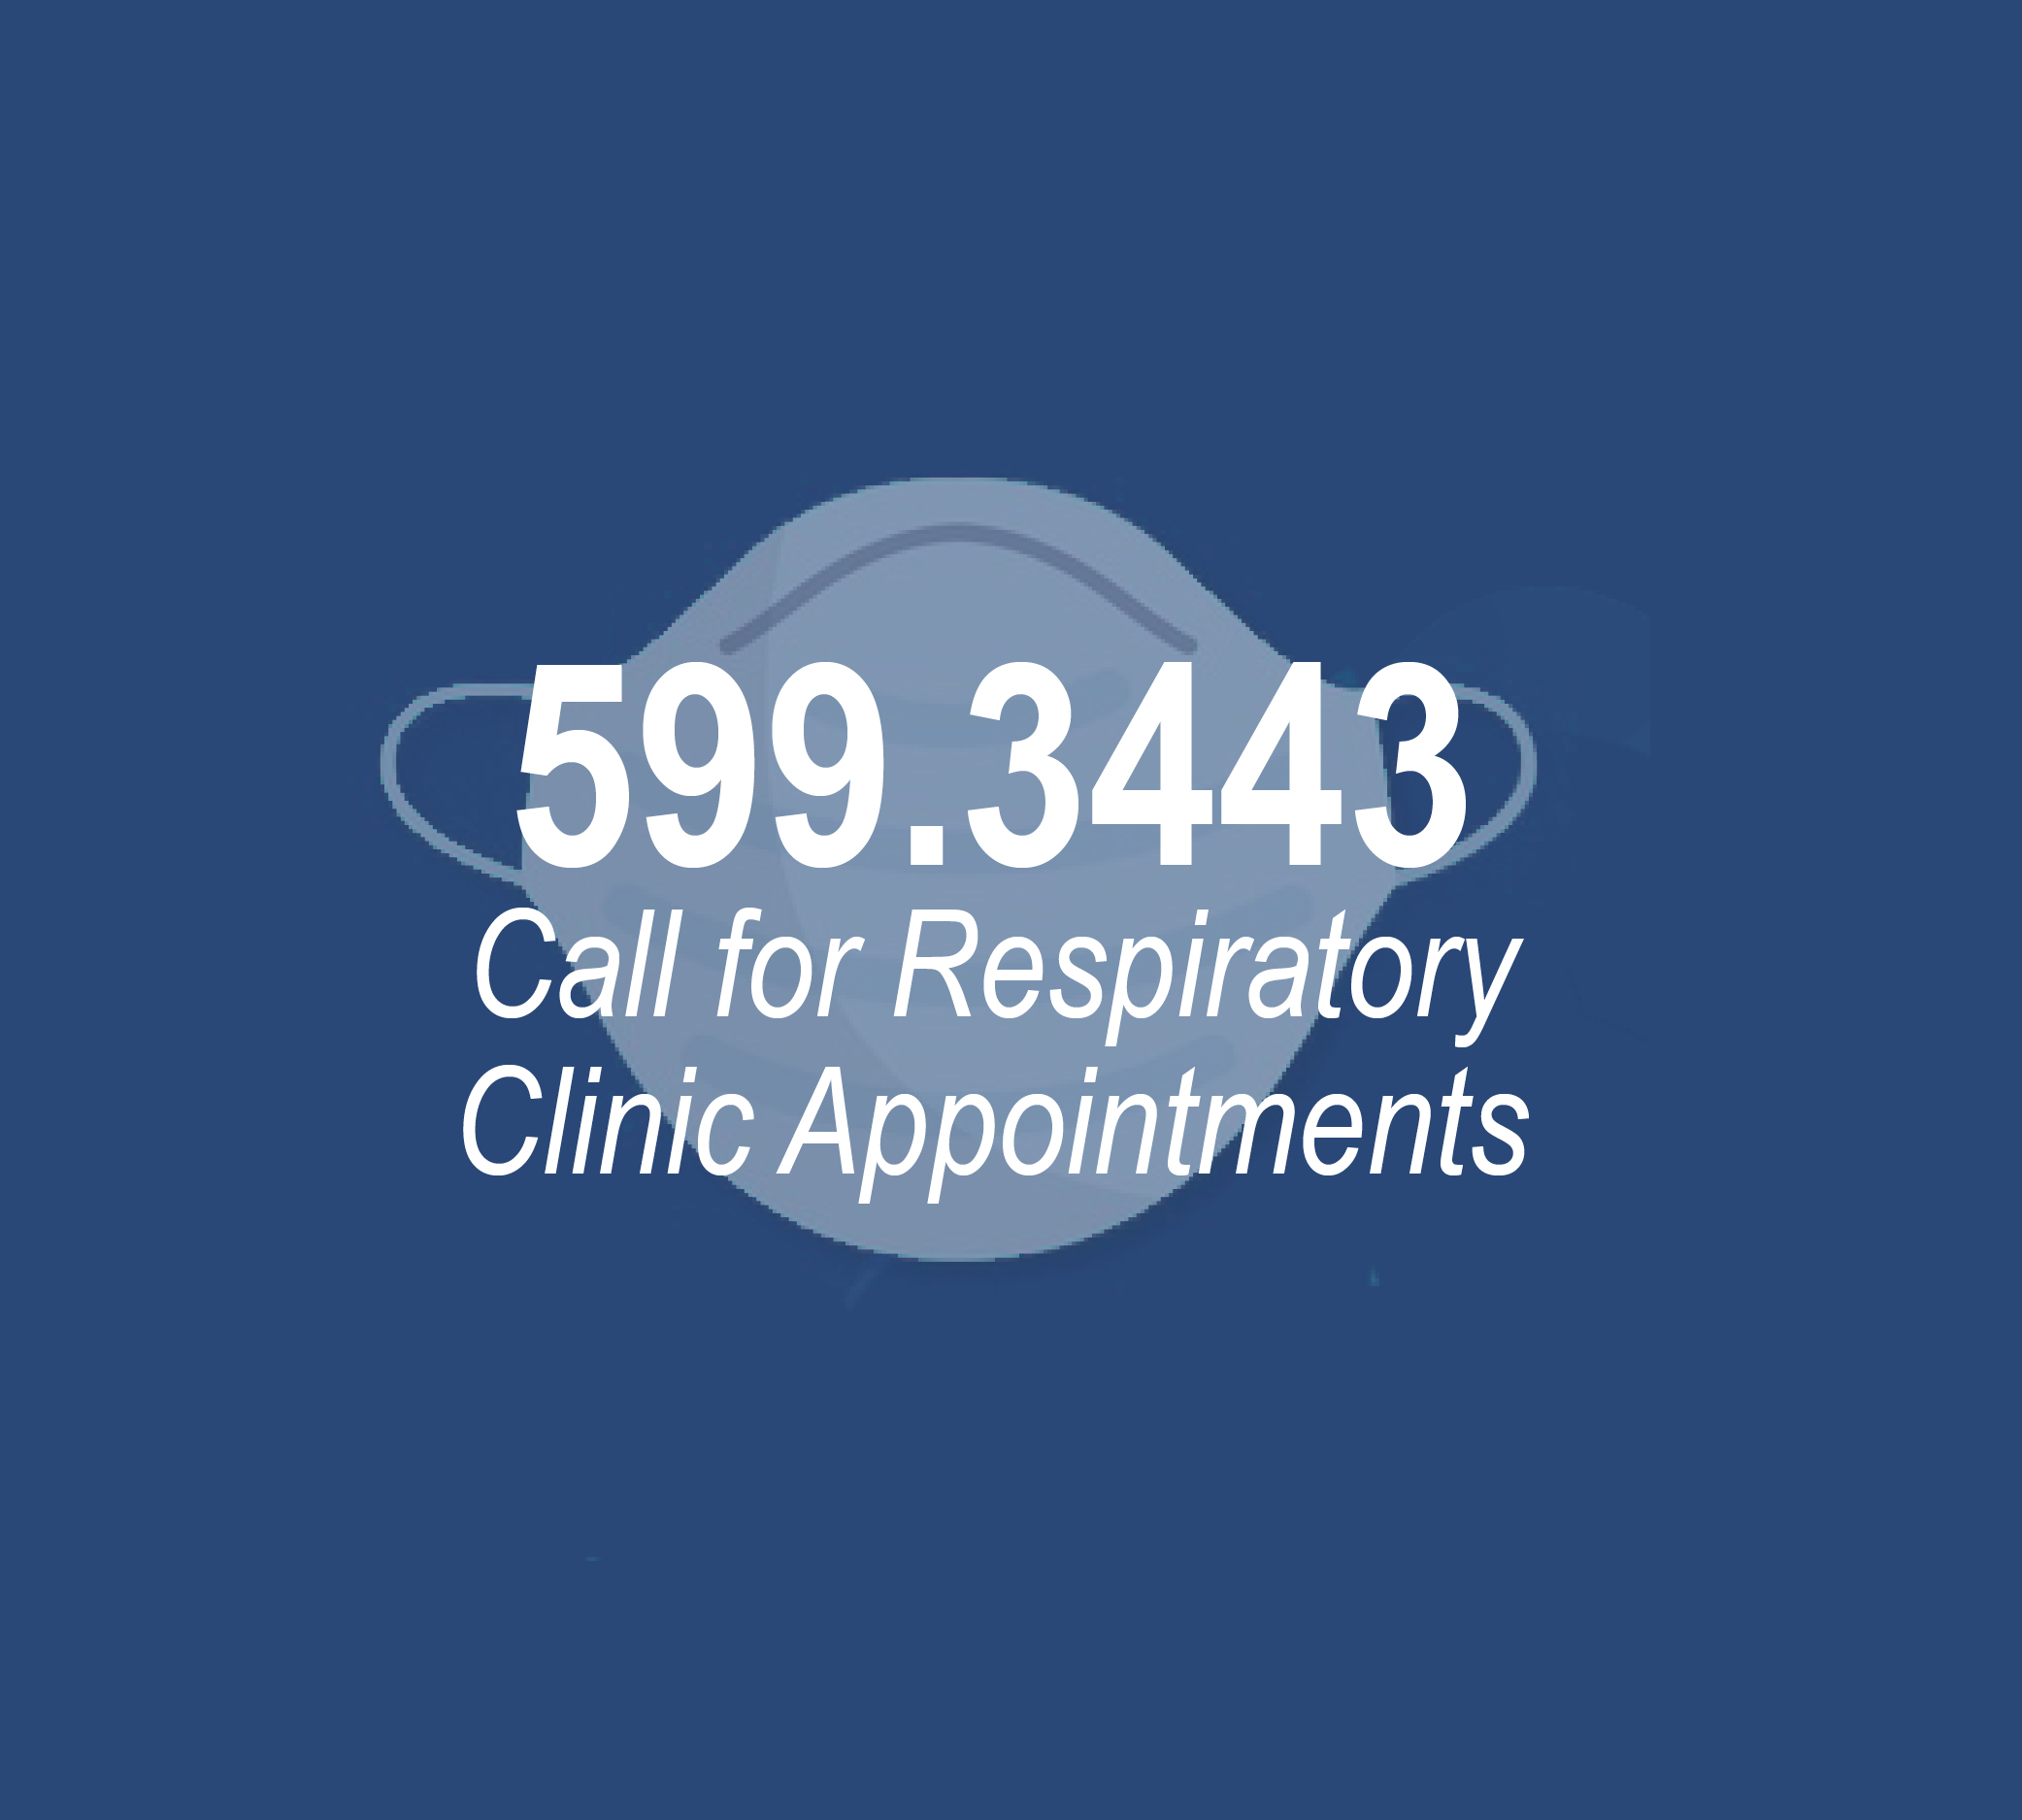 Respiratory Clinic Appointments